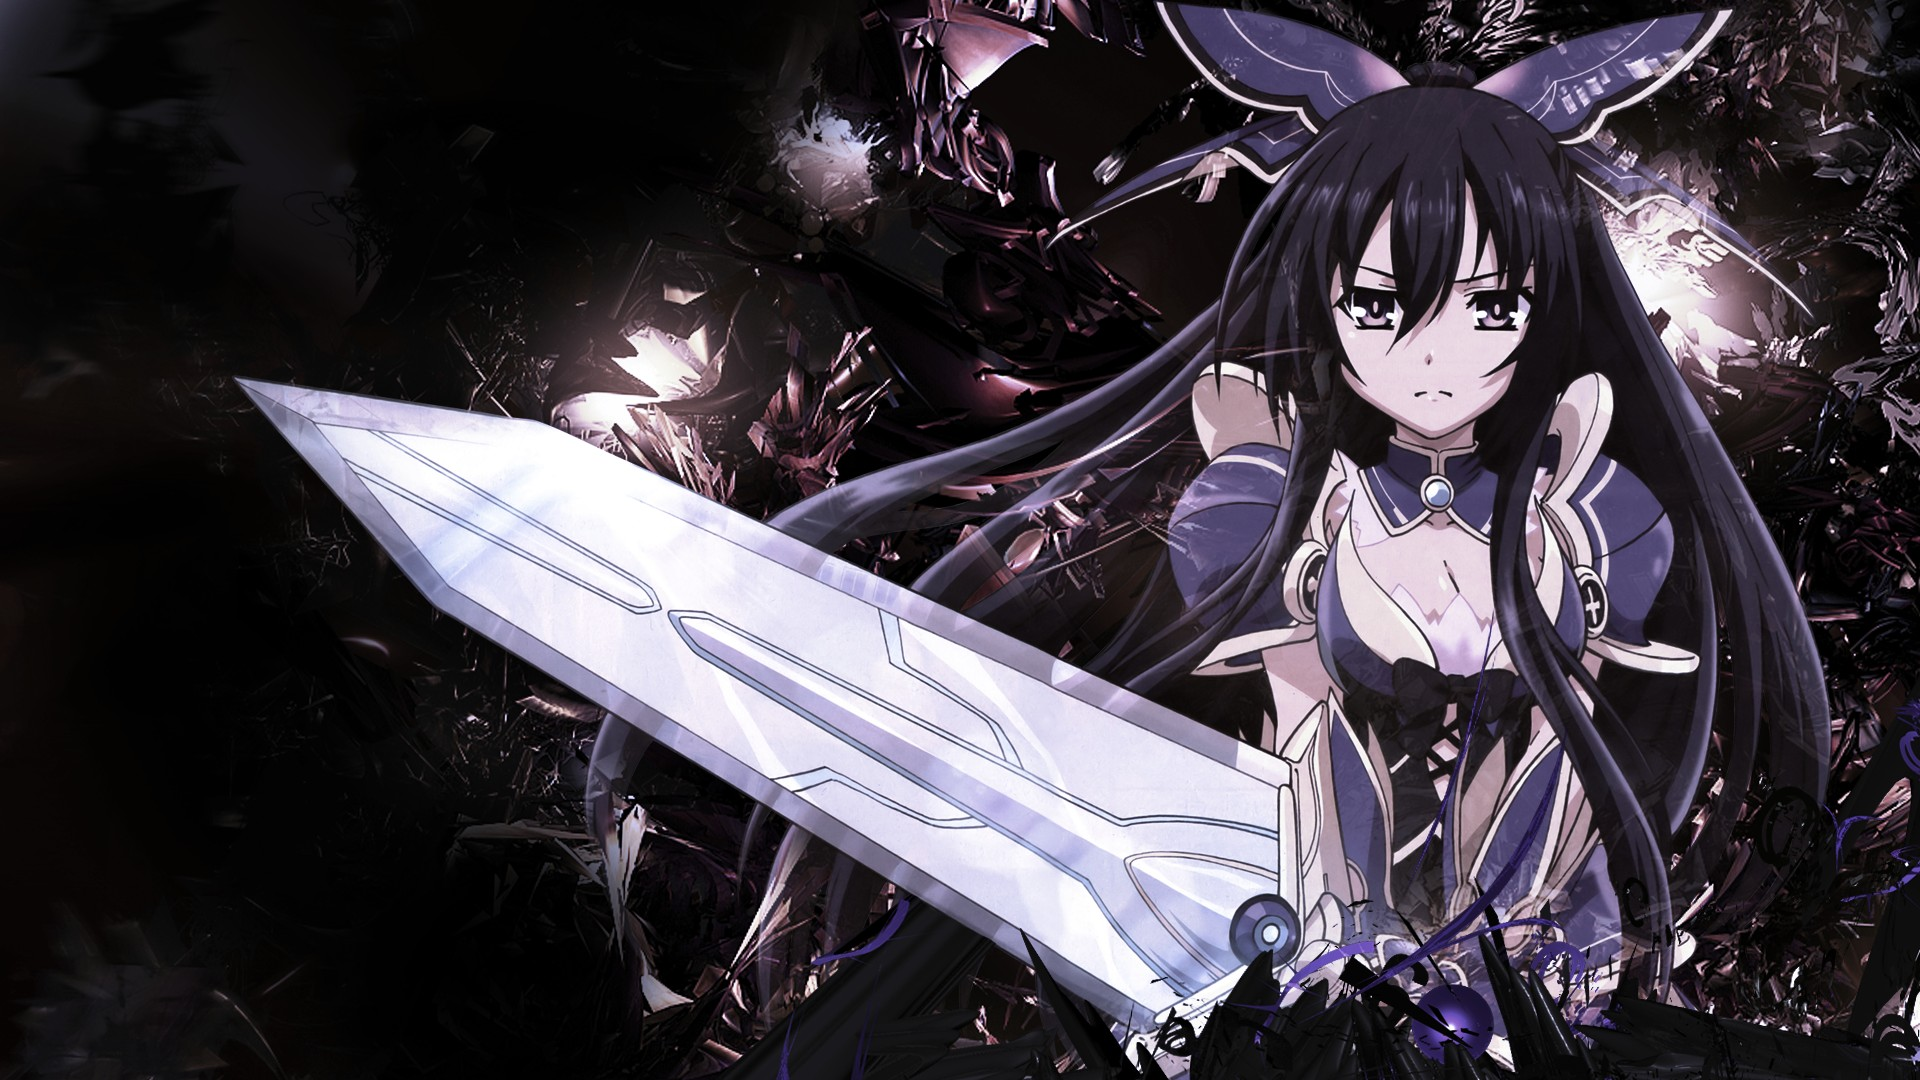 Date a live wallpaper in Australia